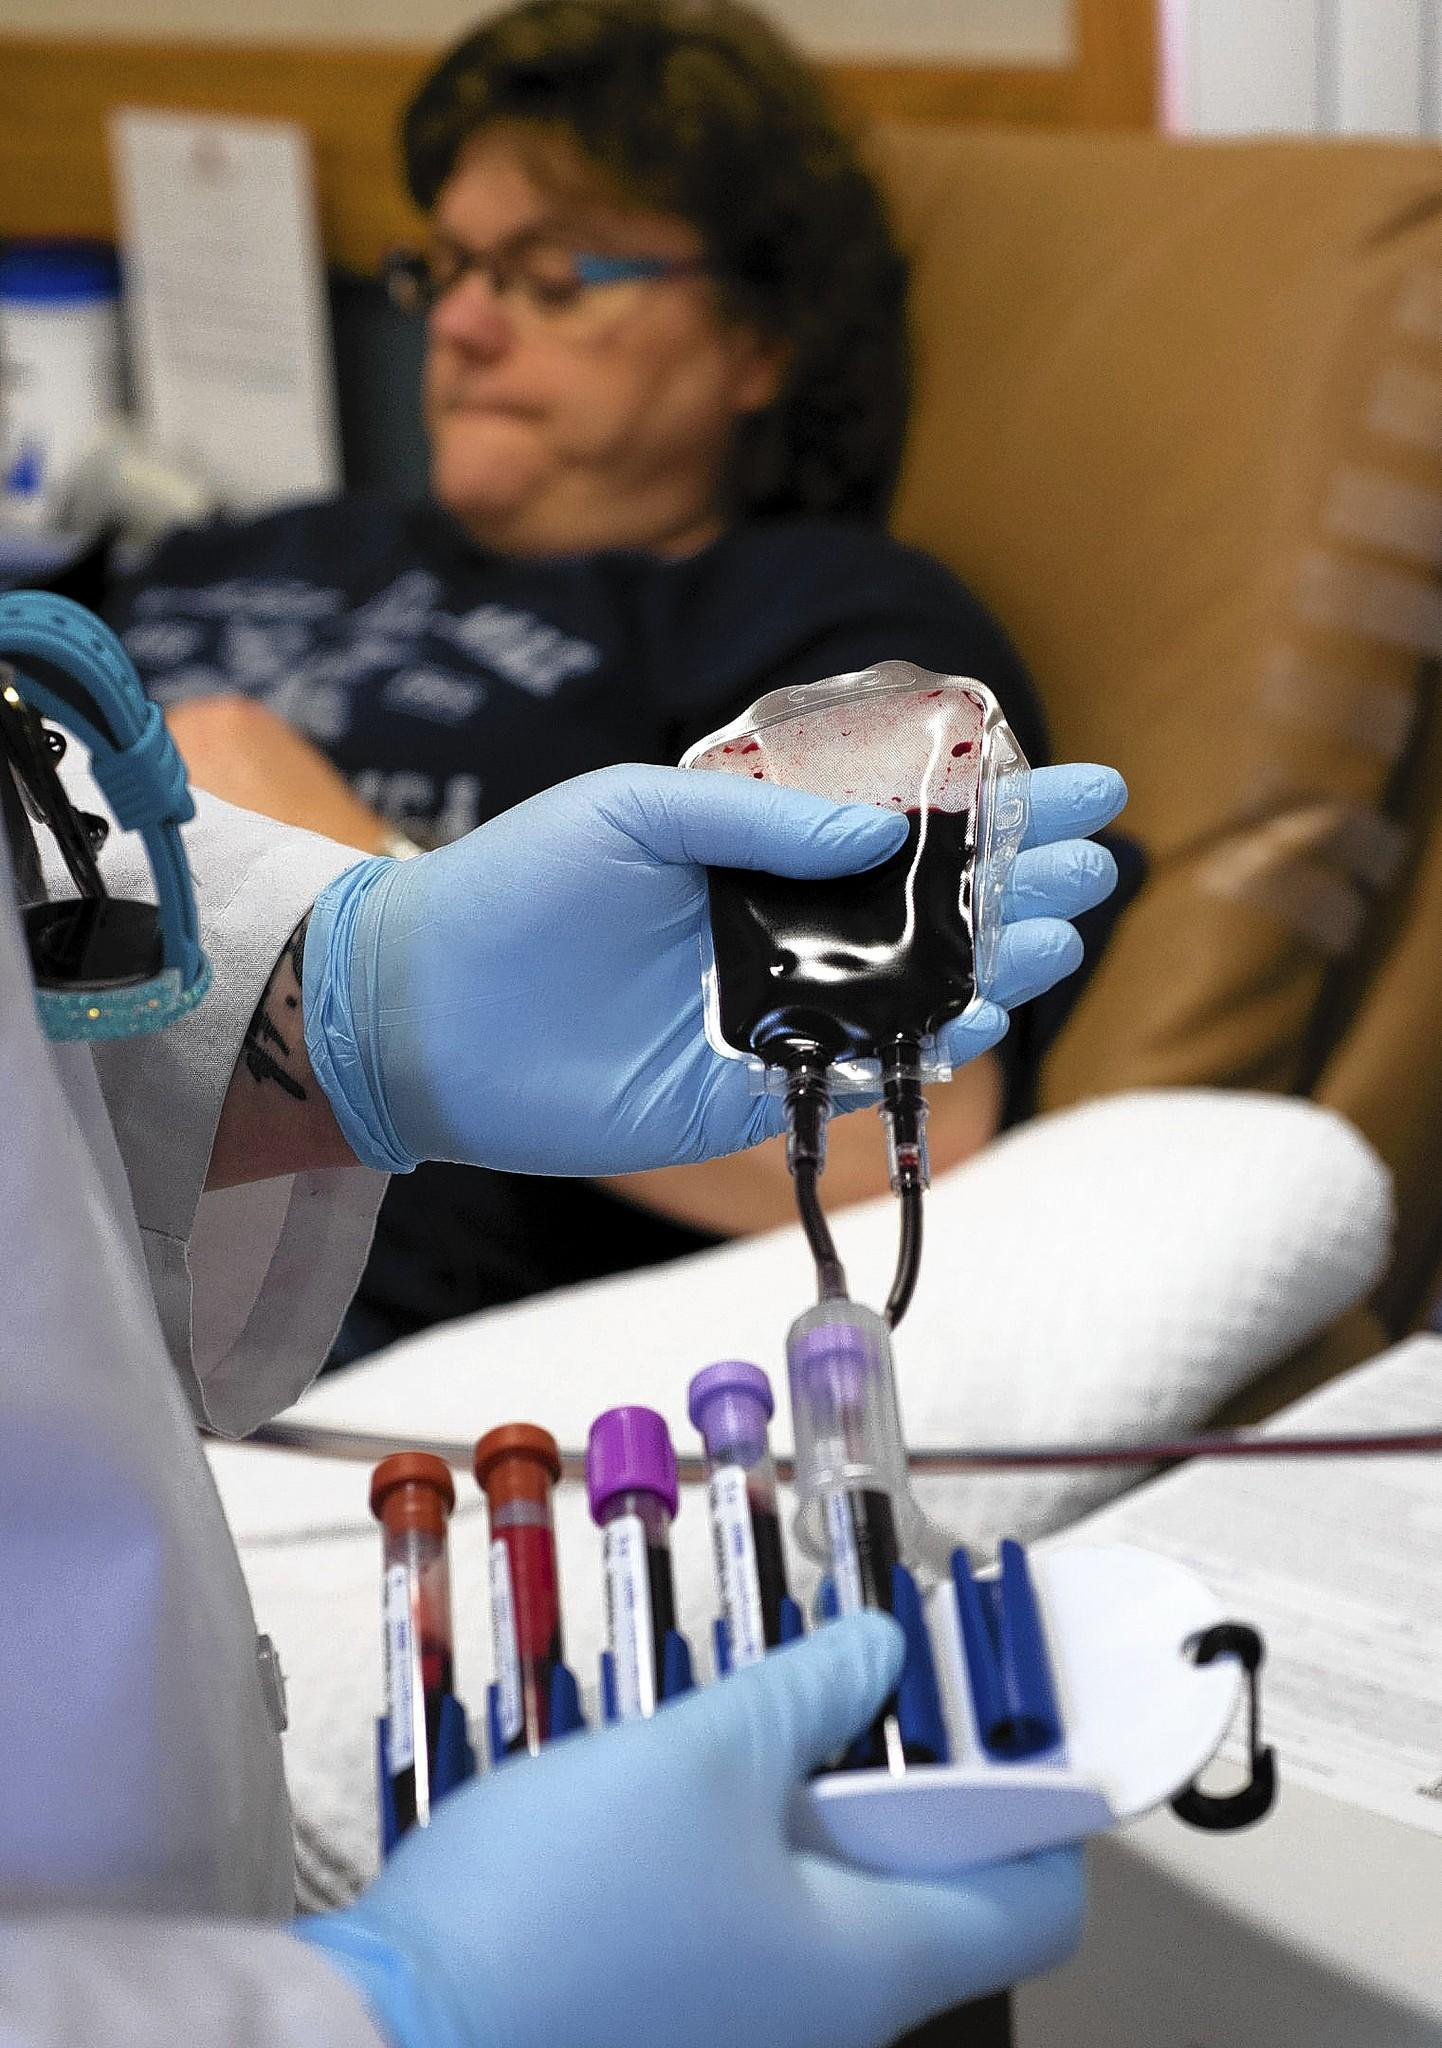 Collection Specialist Nancy Peacock (foreground) handles samples as Karen Furler of Nazareth gets her blood drawn Sunday at the Miller Keystone Blood Center in Hanover Township, Northampton County. Miller Keystone, the primary provider of blood, platelets and plasma to roughly two dozen hospitals in the Greater Lehigh Valley and western New Jersey region, last week put out an urgent call for donations. Blood centers normally experience lower collection levels during the holidays, but that situation is magnified when Christmas and New Year's fall mid-week.